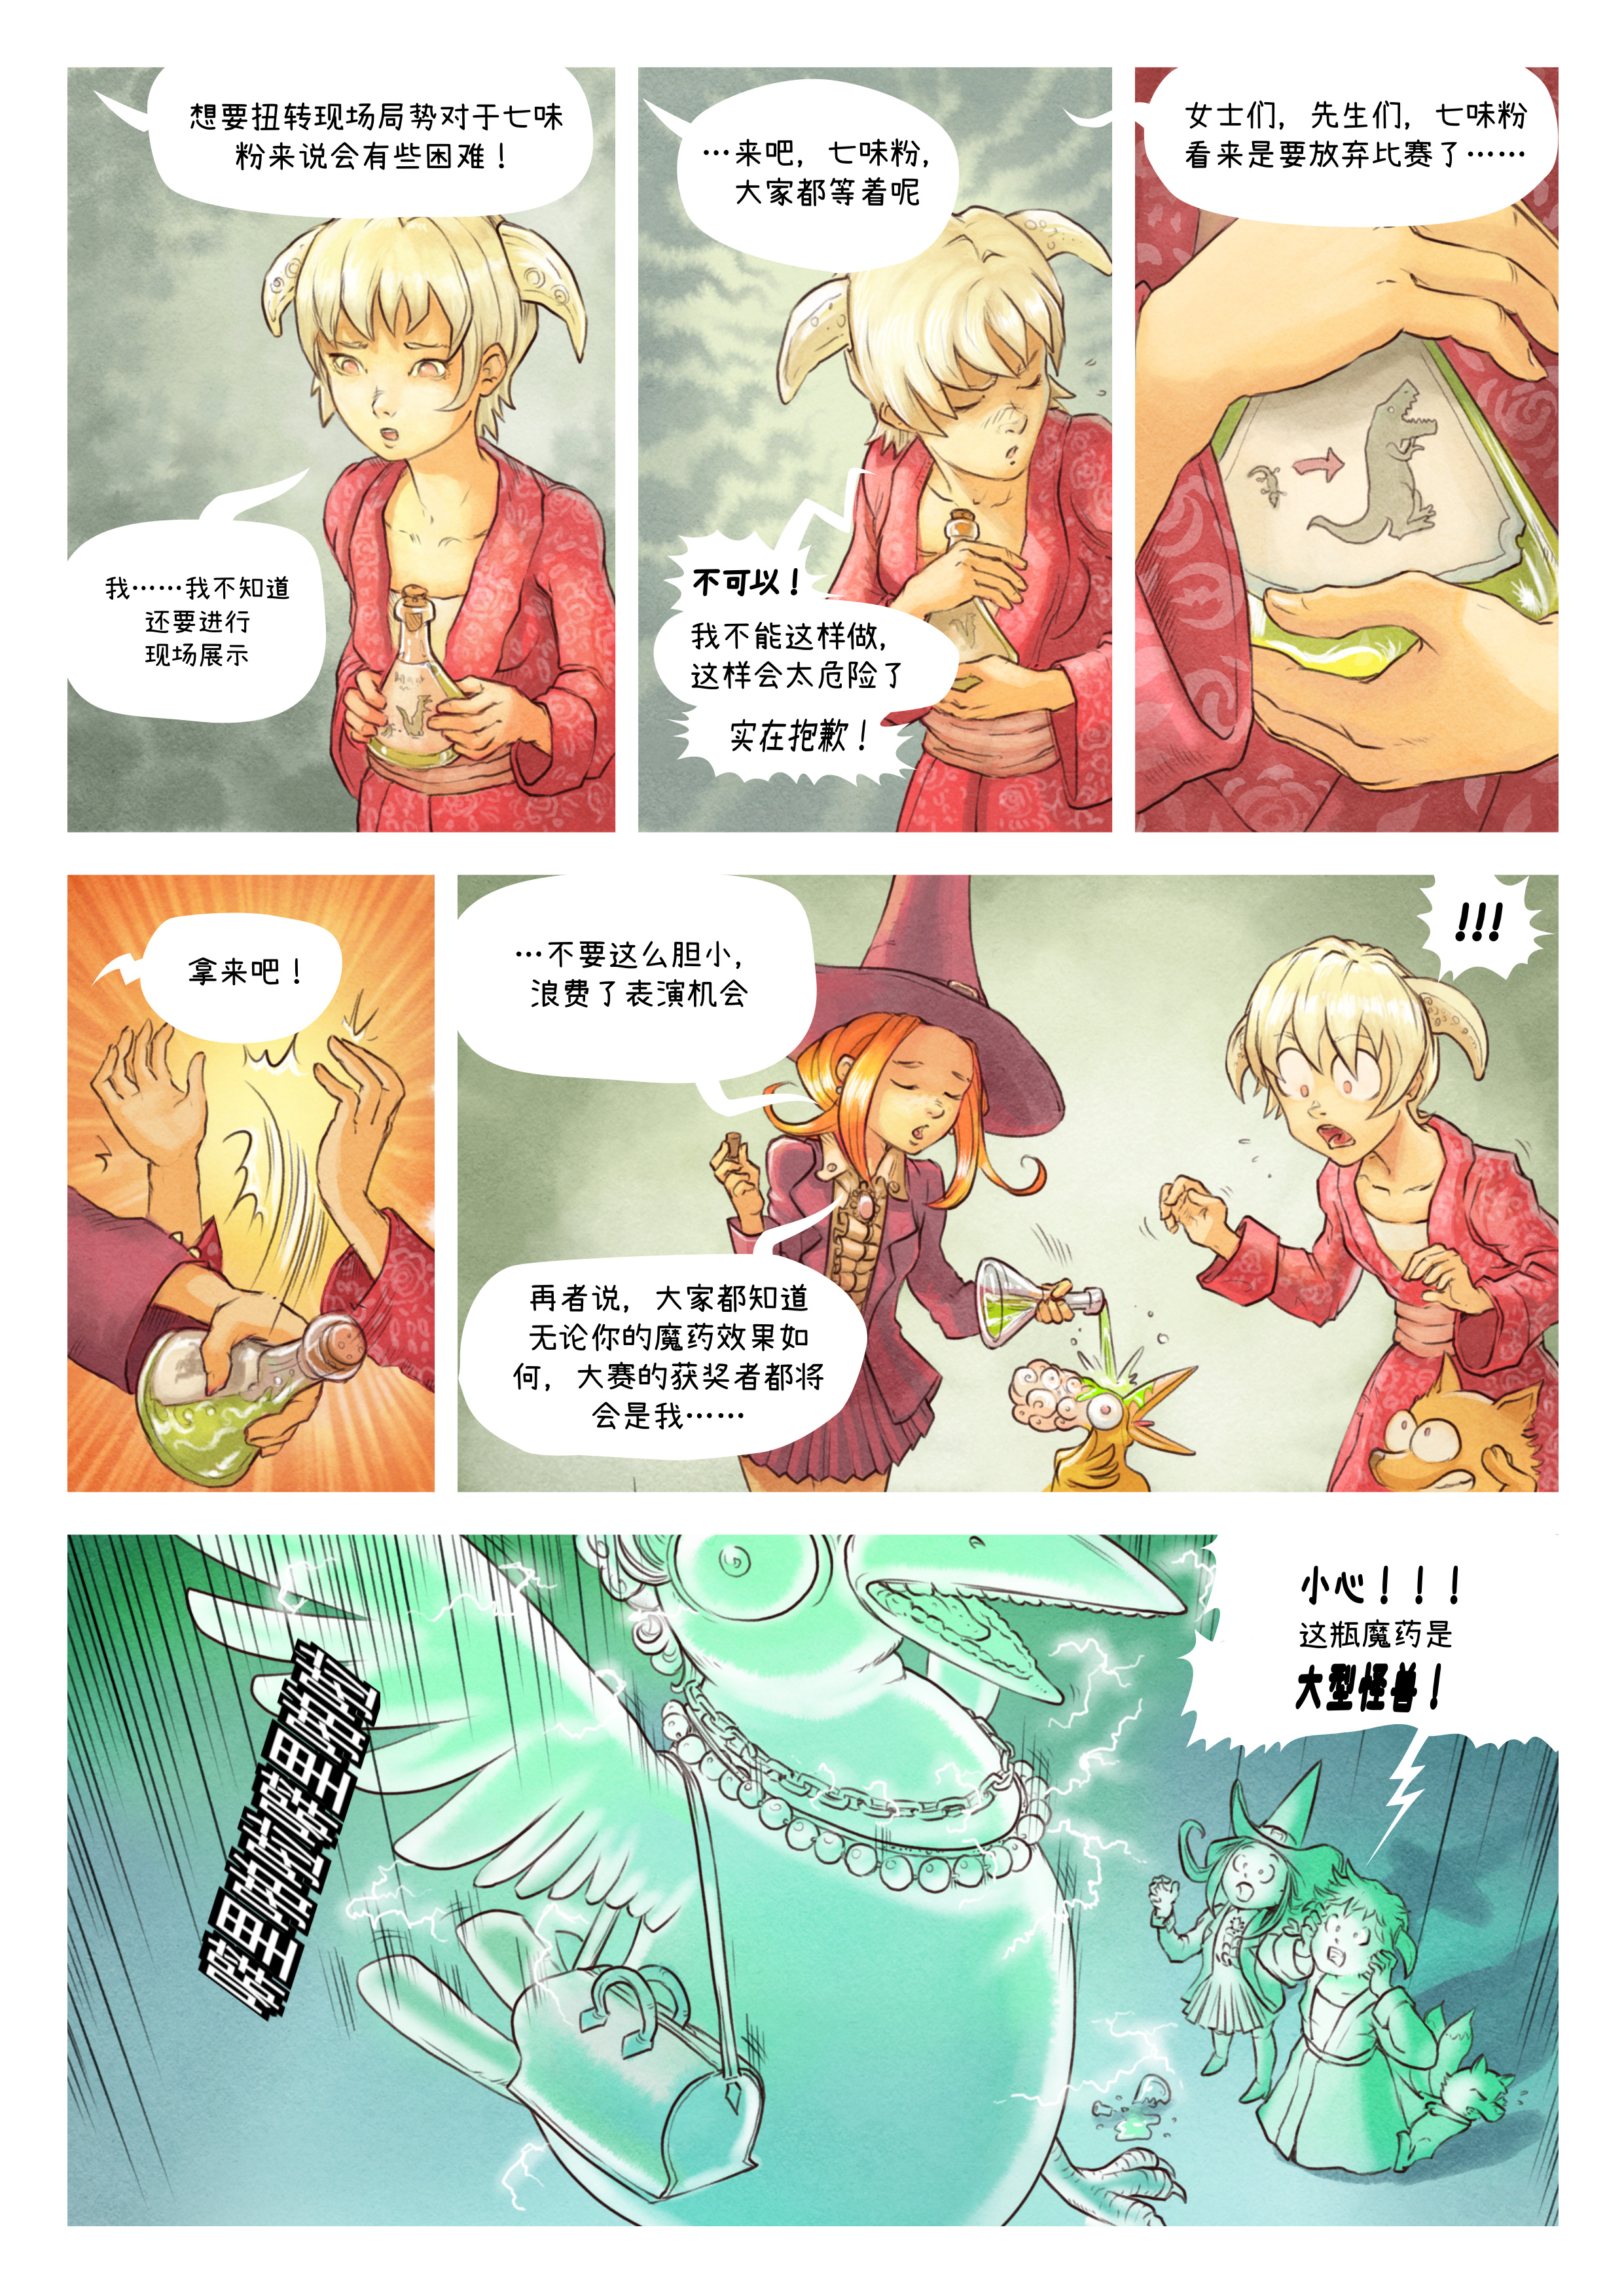 A webcomic page of Pepper&Carrot, 漫画全集 6 [cn], 页面 6